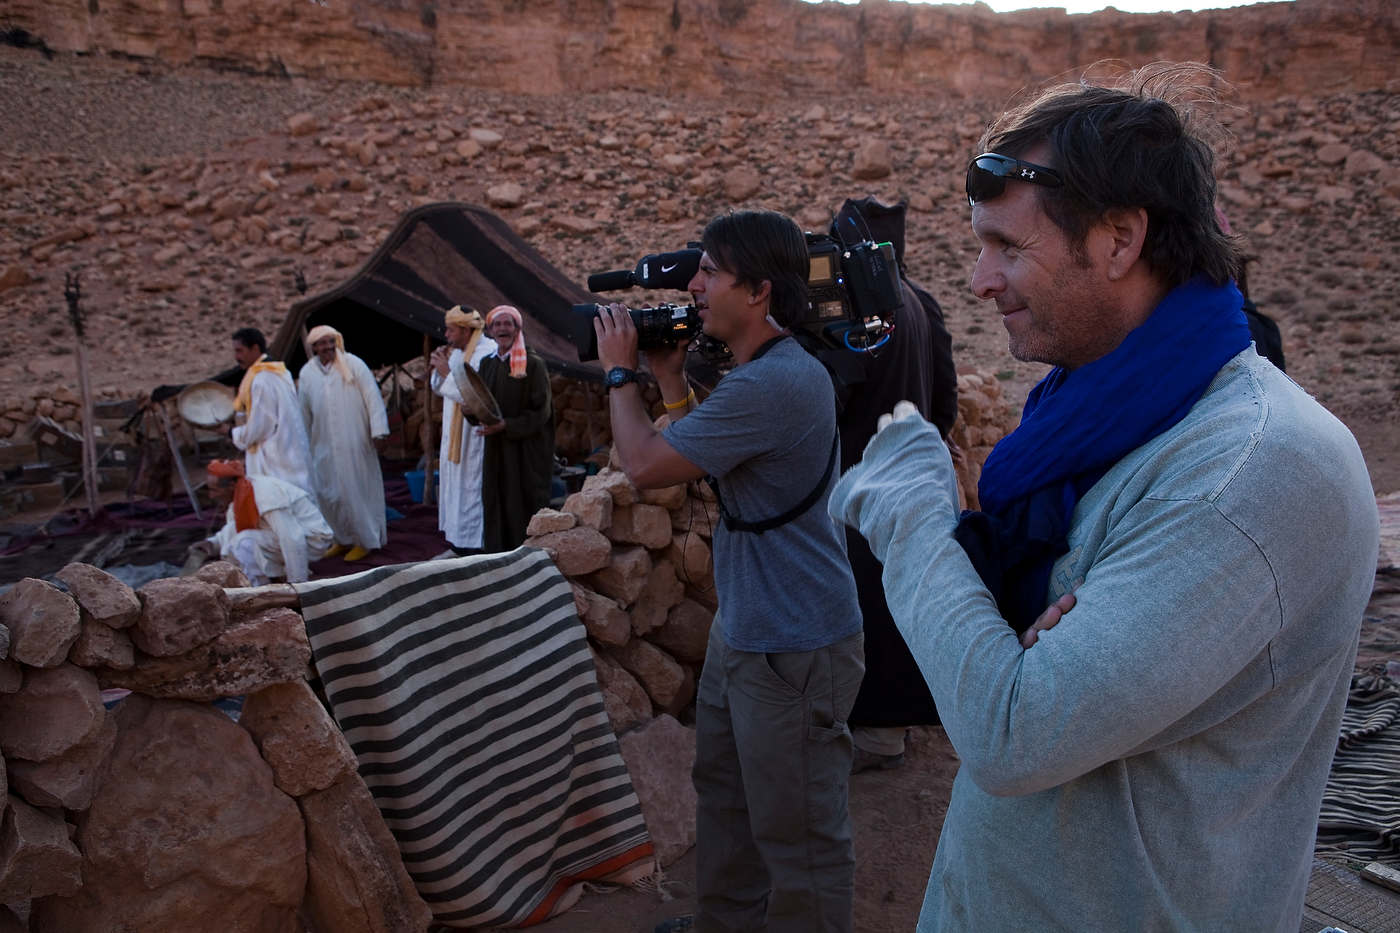 Mark Burnett observes filming in the Dades Gorges.